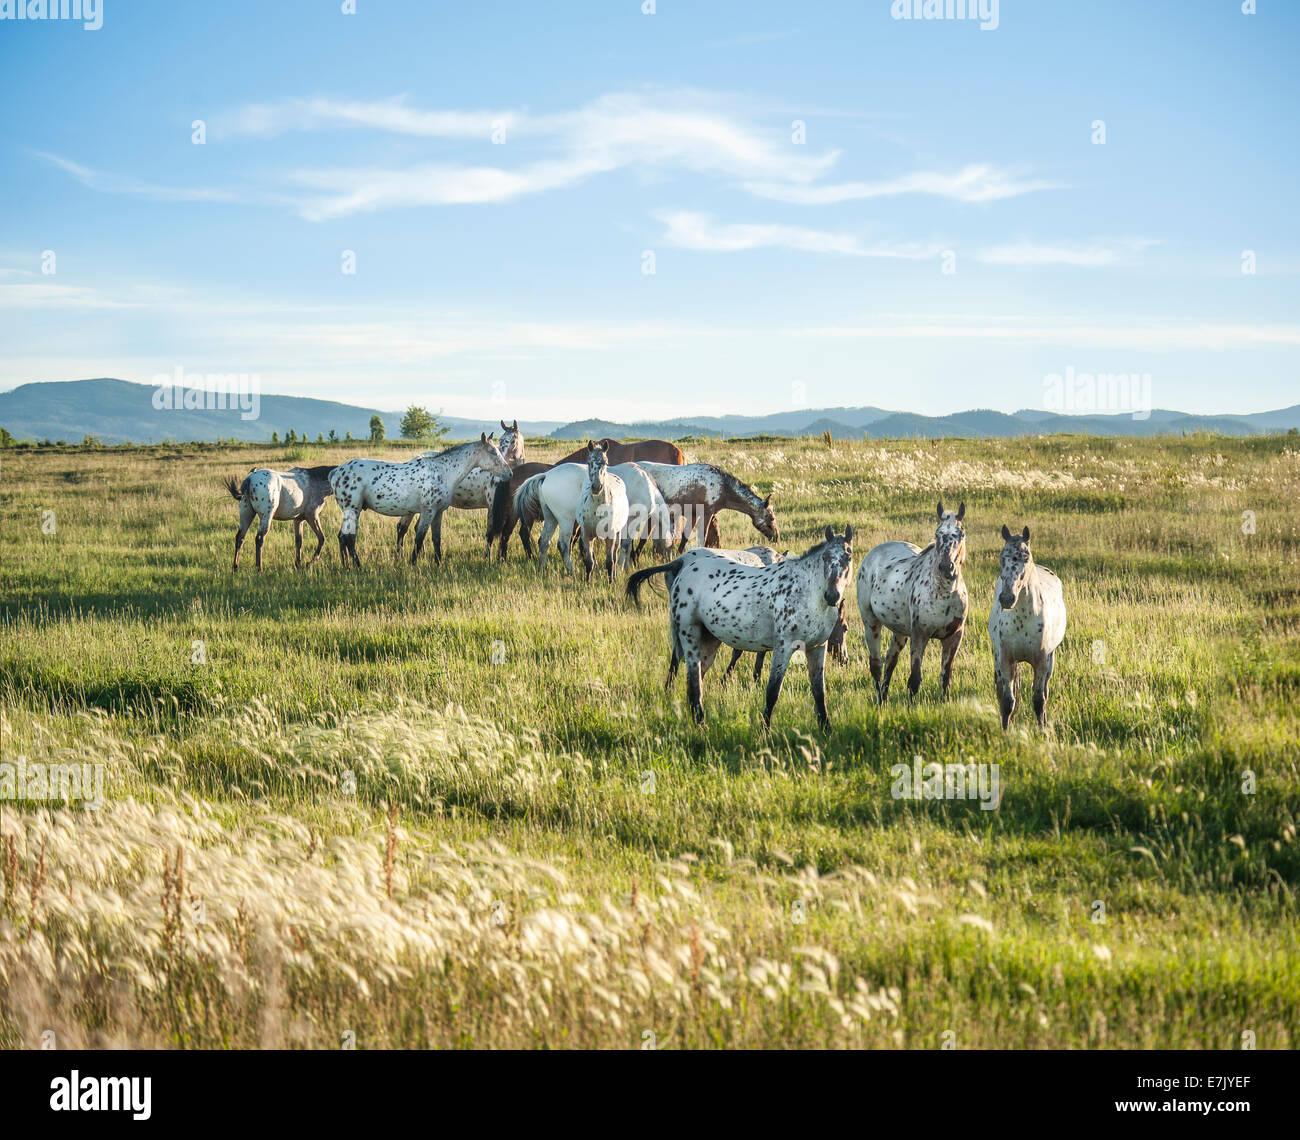 Tiger Horse herd. Tiger horses are gaited, spotted trail horses with a coat color much like the Appaloosa. - Stock Image